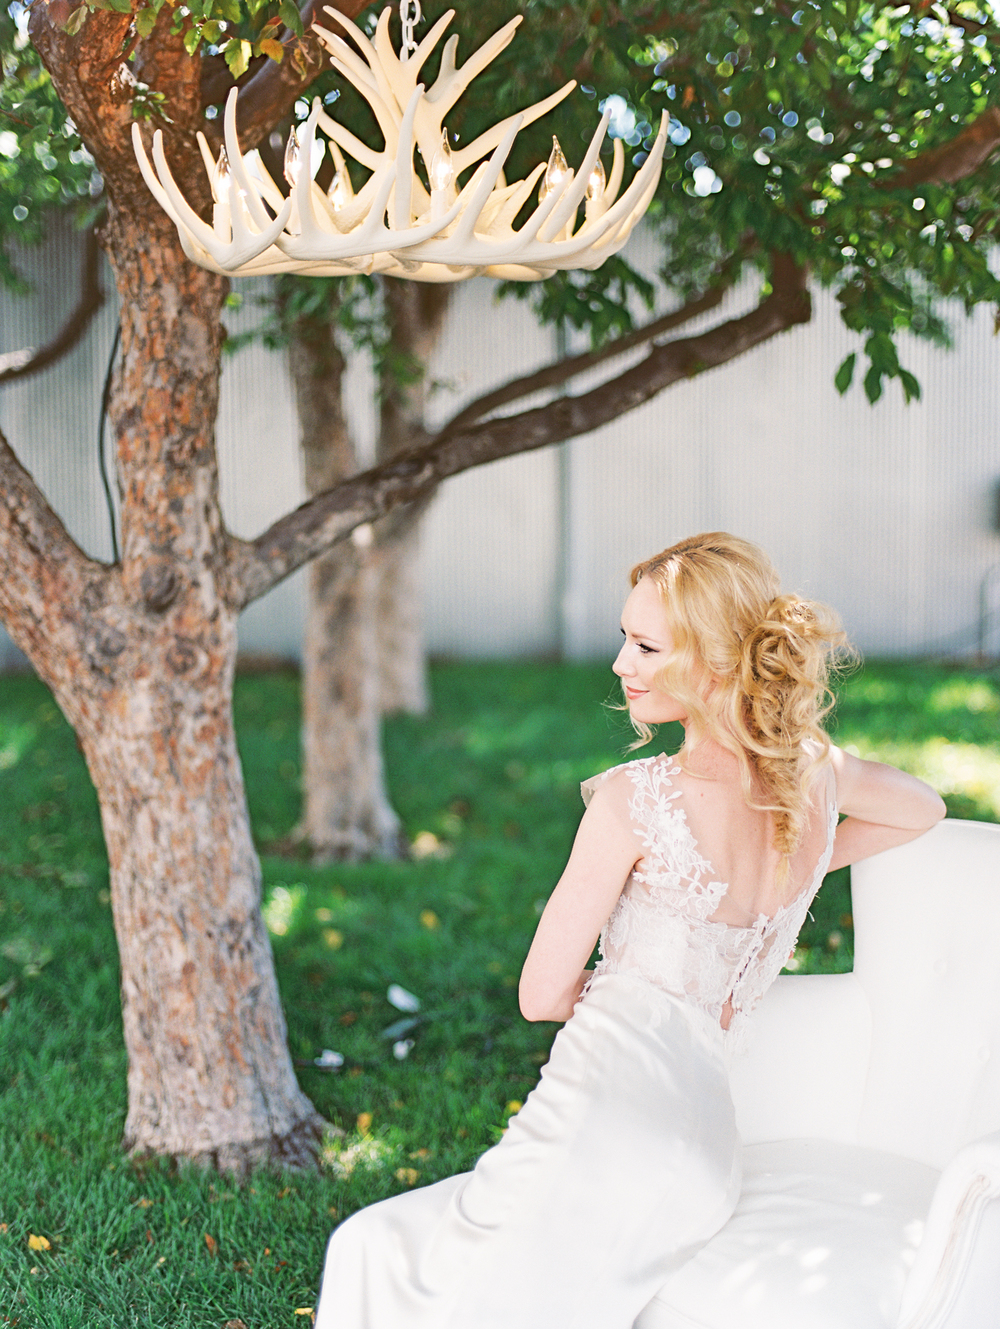 Blanc-Denver-wedding-inspiration-by-Lisa-O'Dwyer-Denver-fine-art-wedding-photographer-45.jpg